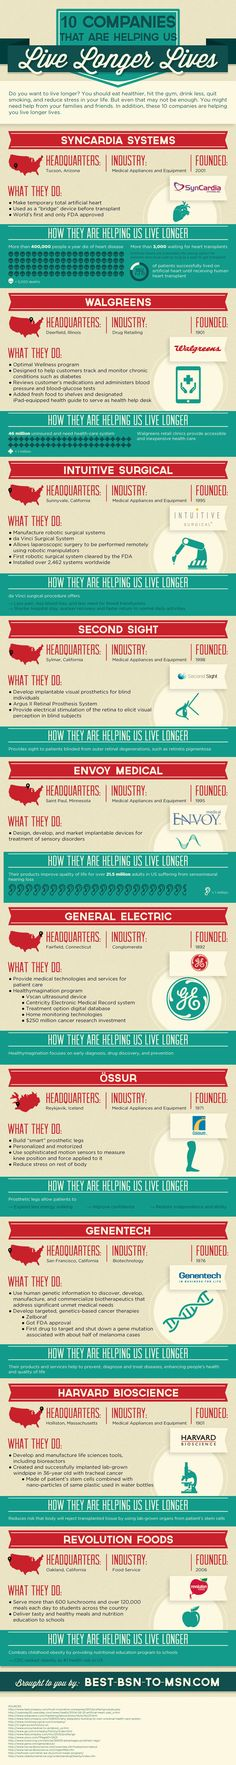 10 Companies that are helping us live longer lives #Infographic #health